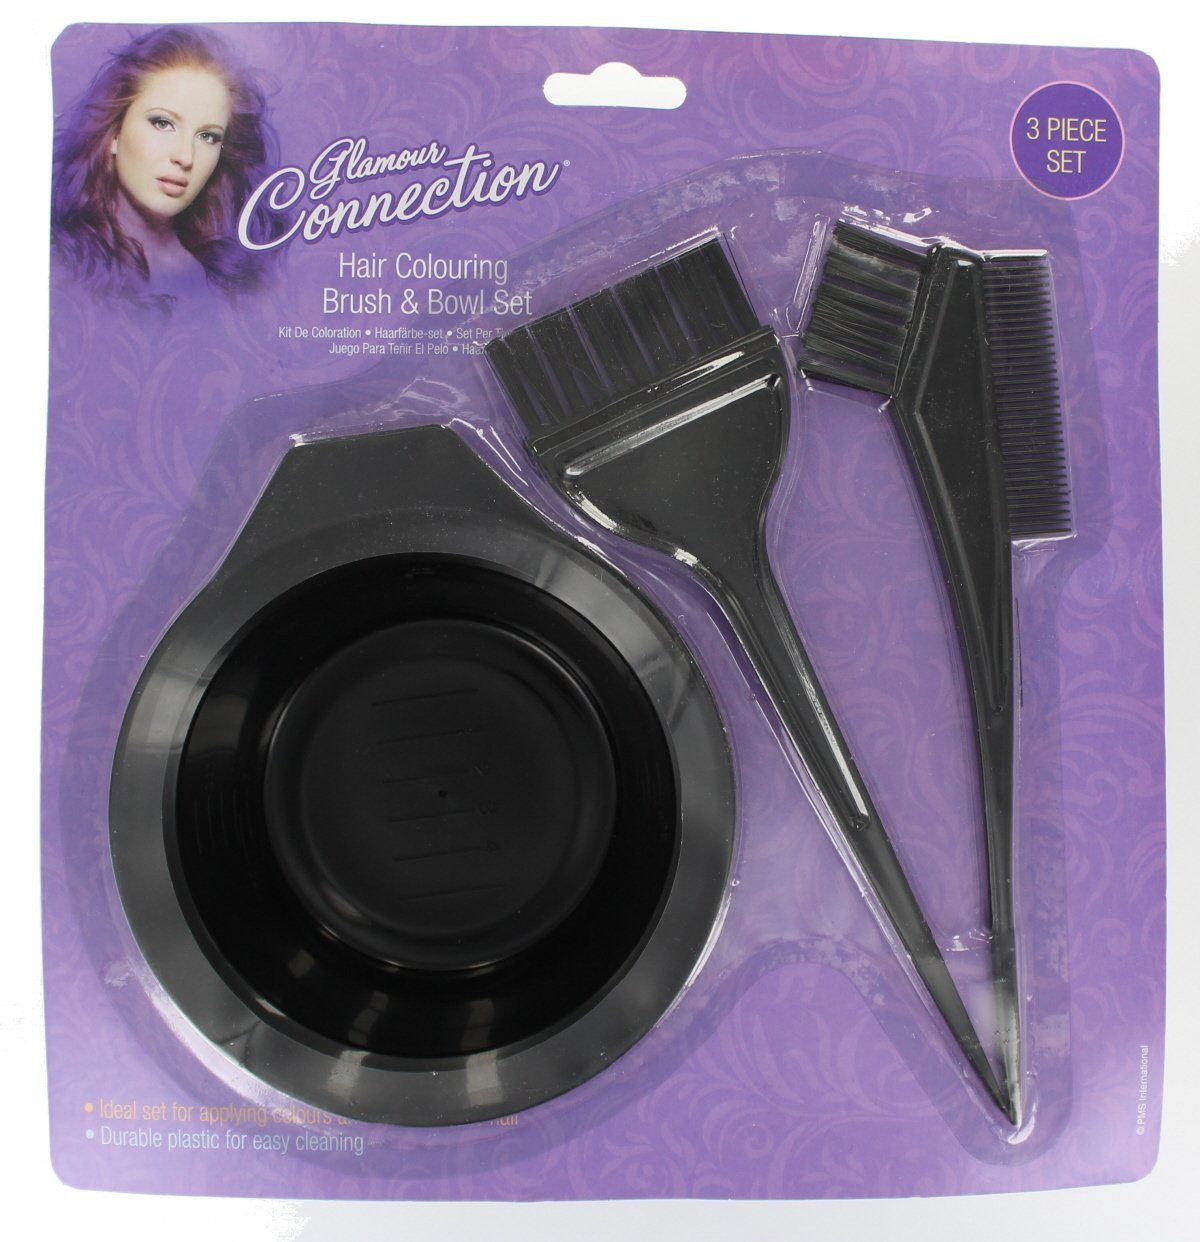 3 Piece Hair Colouring Tool Set